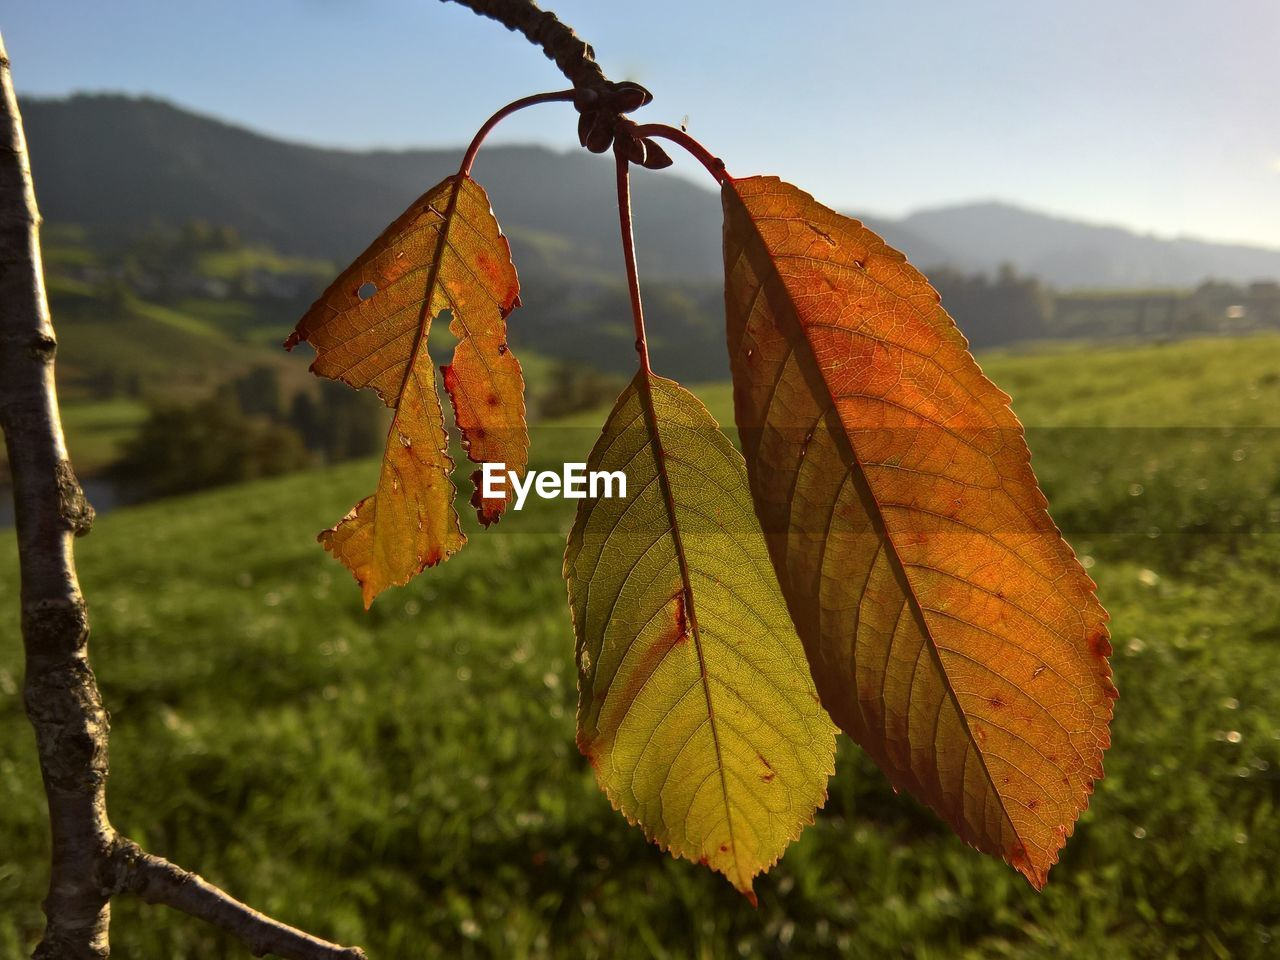 leaf, autumn, change, focus on foreground, day, nature, outdoors, dry, close-up, no people, beauty in nature, tranquility, tree, maple, fragility, water, grass, sky